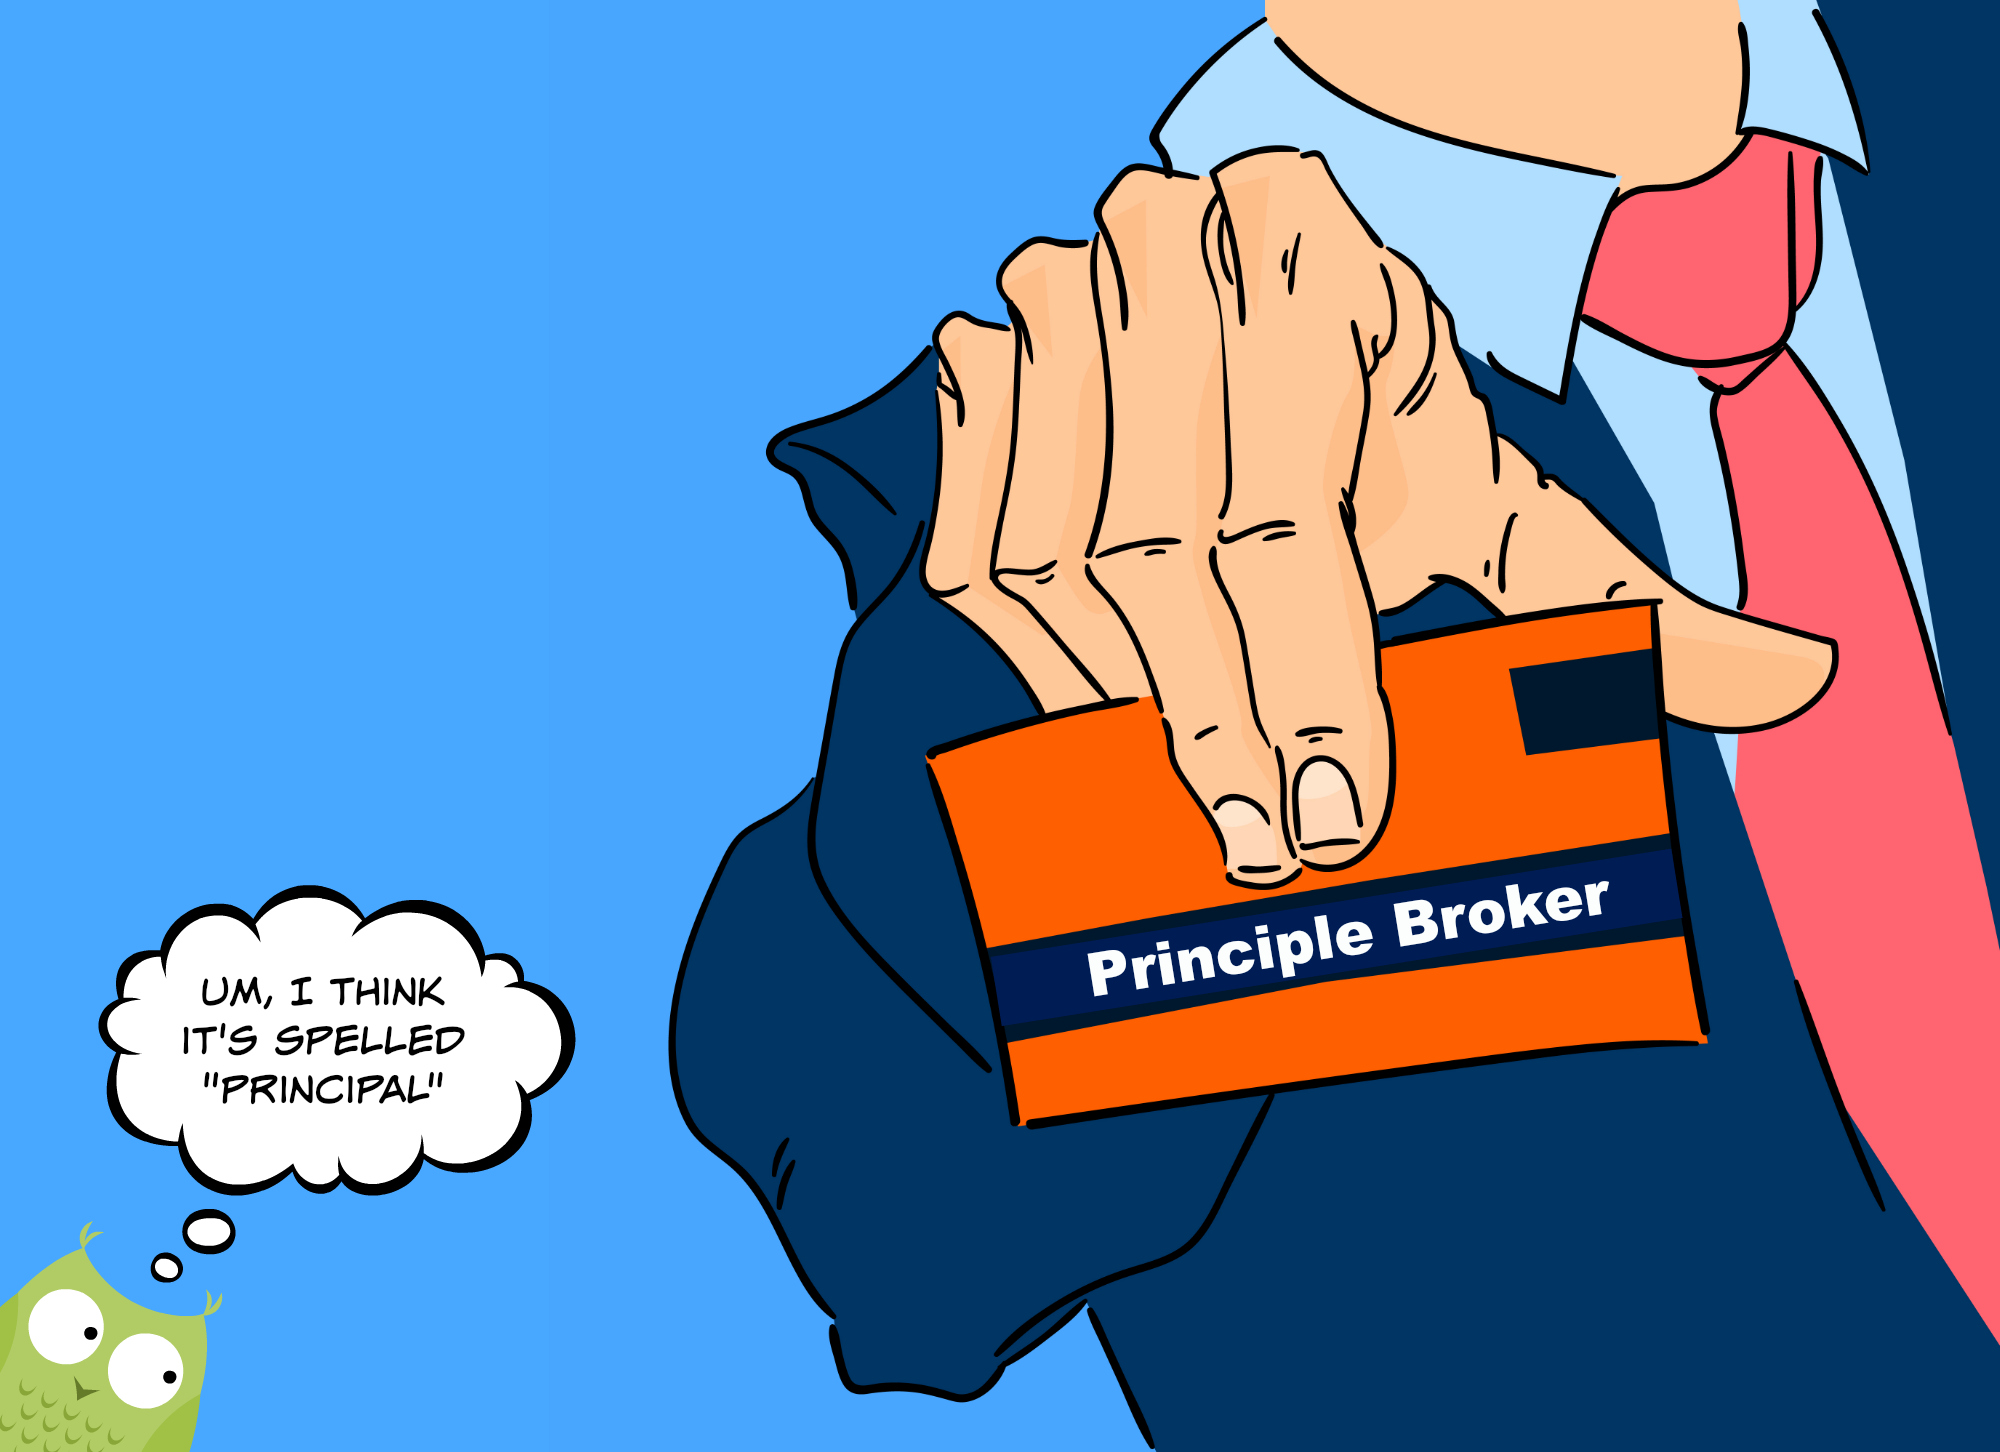 Principal Broker Misspelled